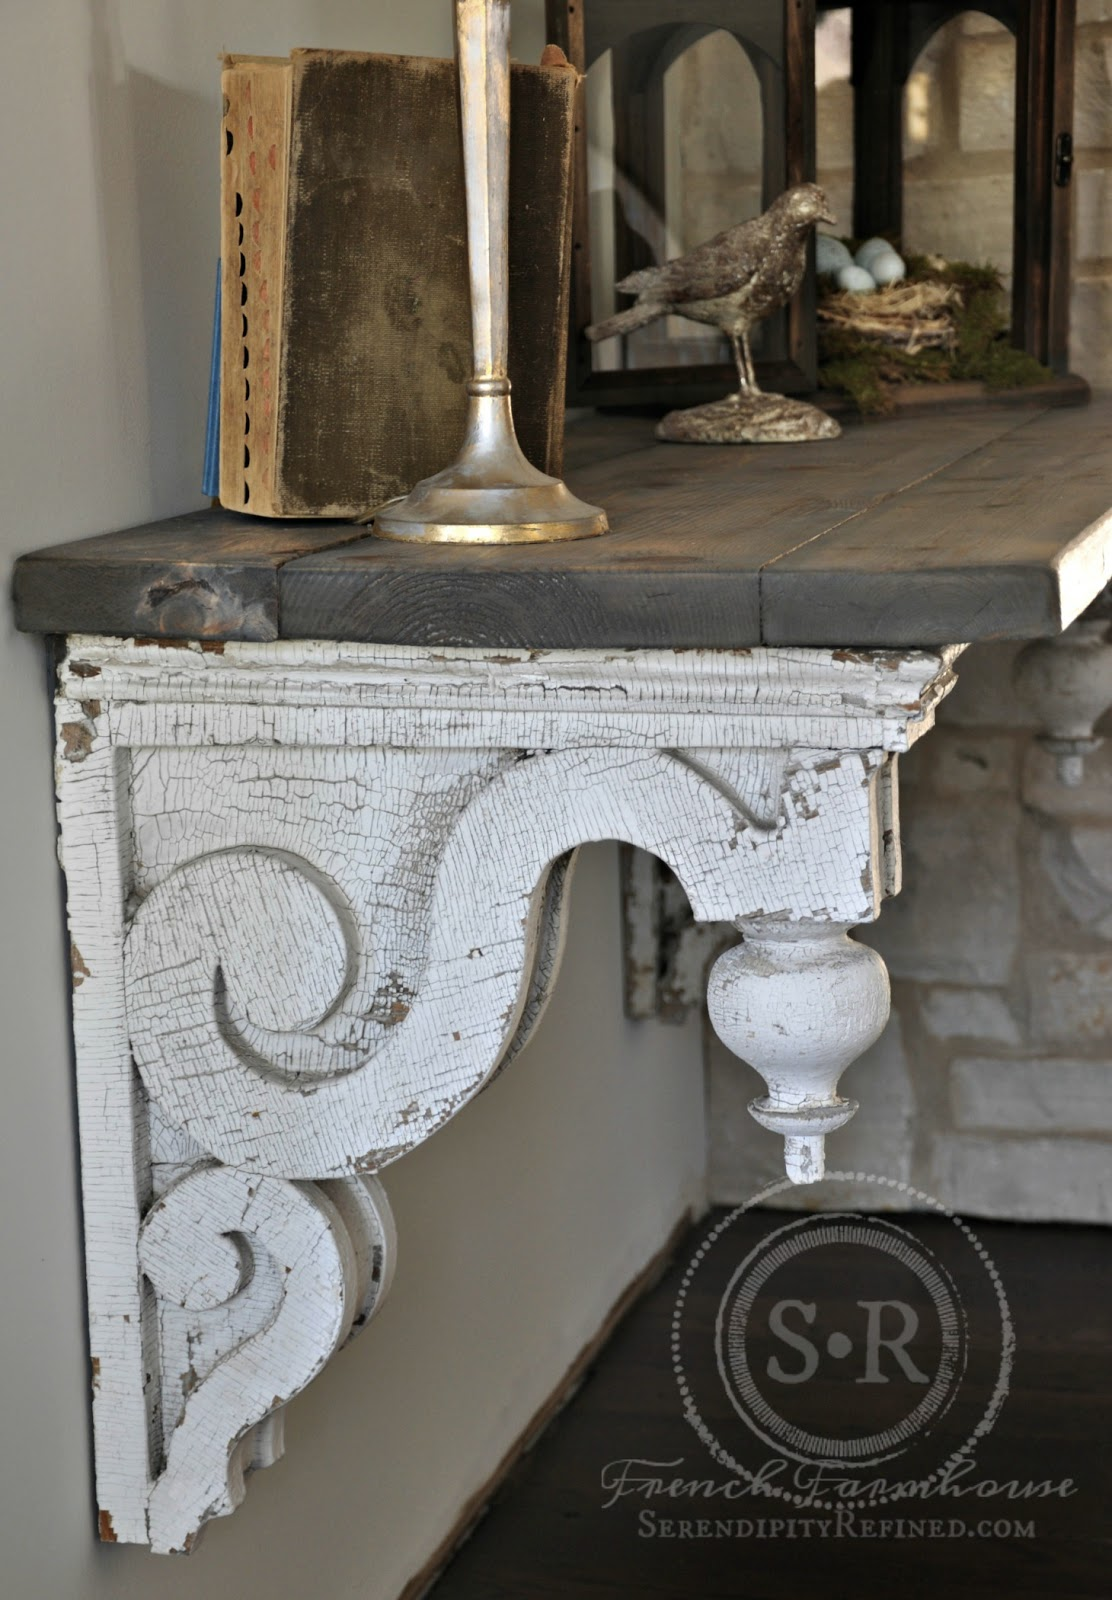 Serendipity Refined Blog Reclaimed Architectural Corbel